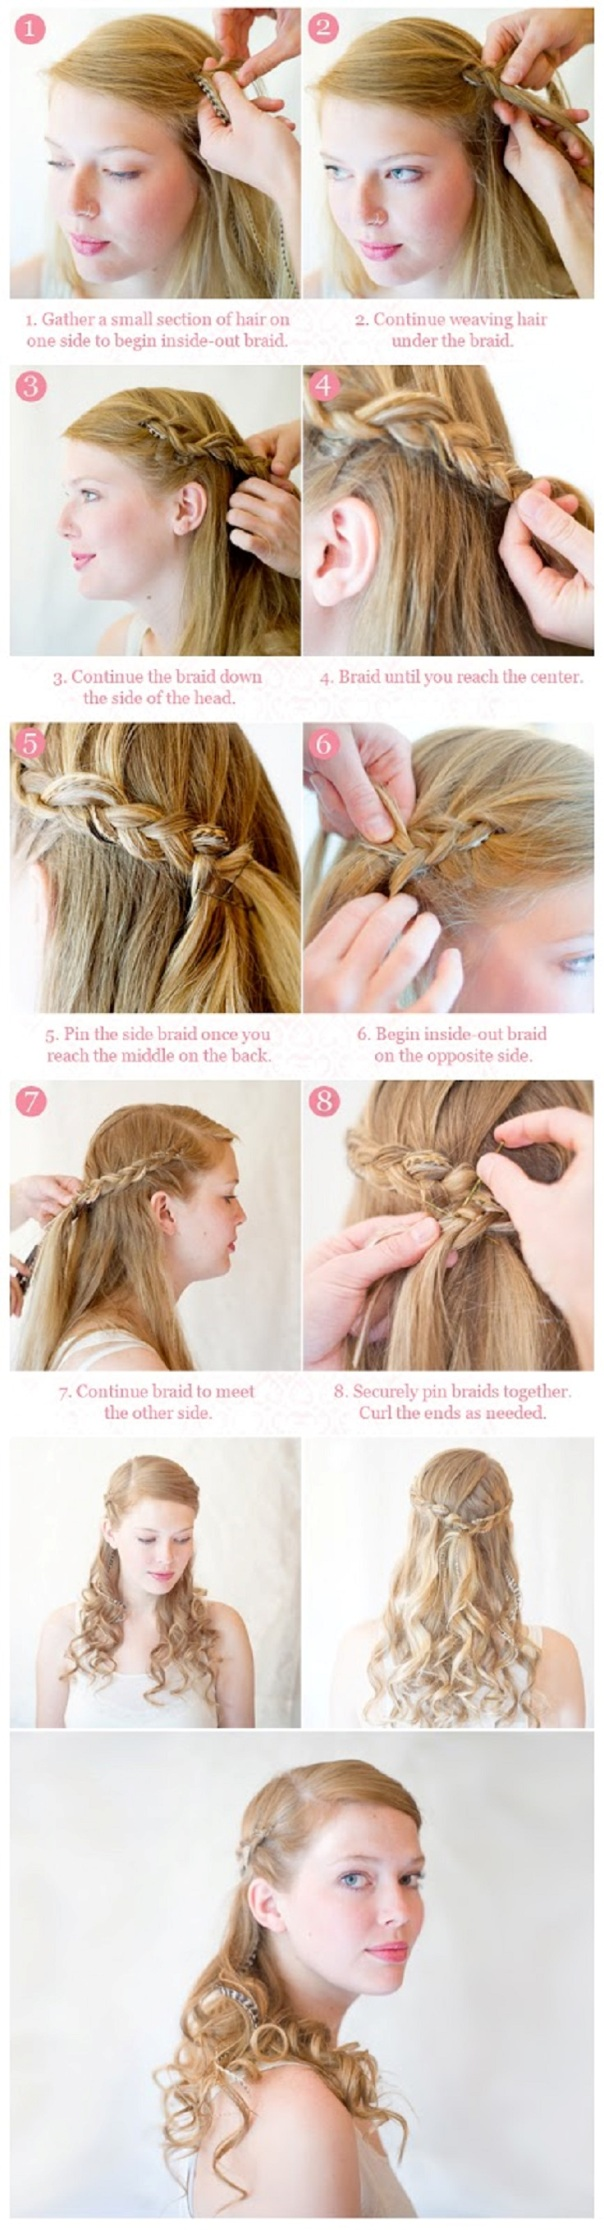 hairstyles_new_year22